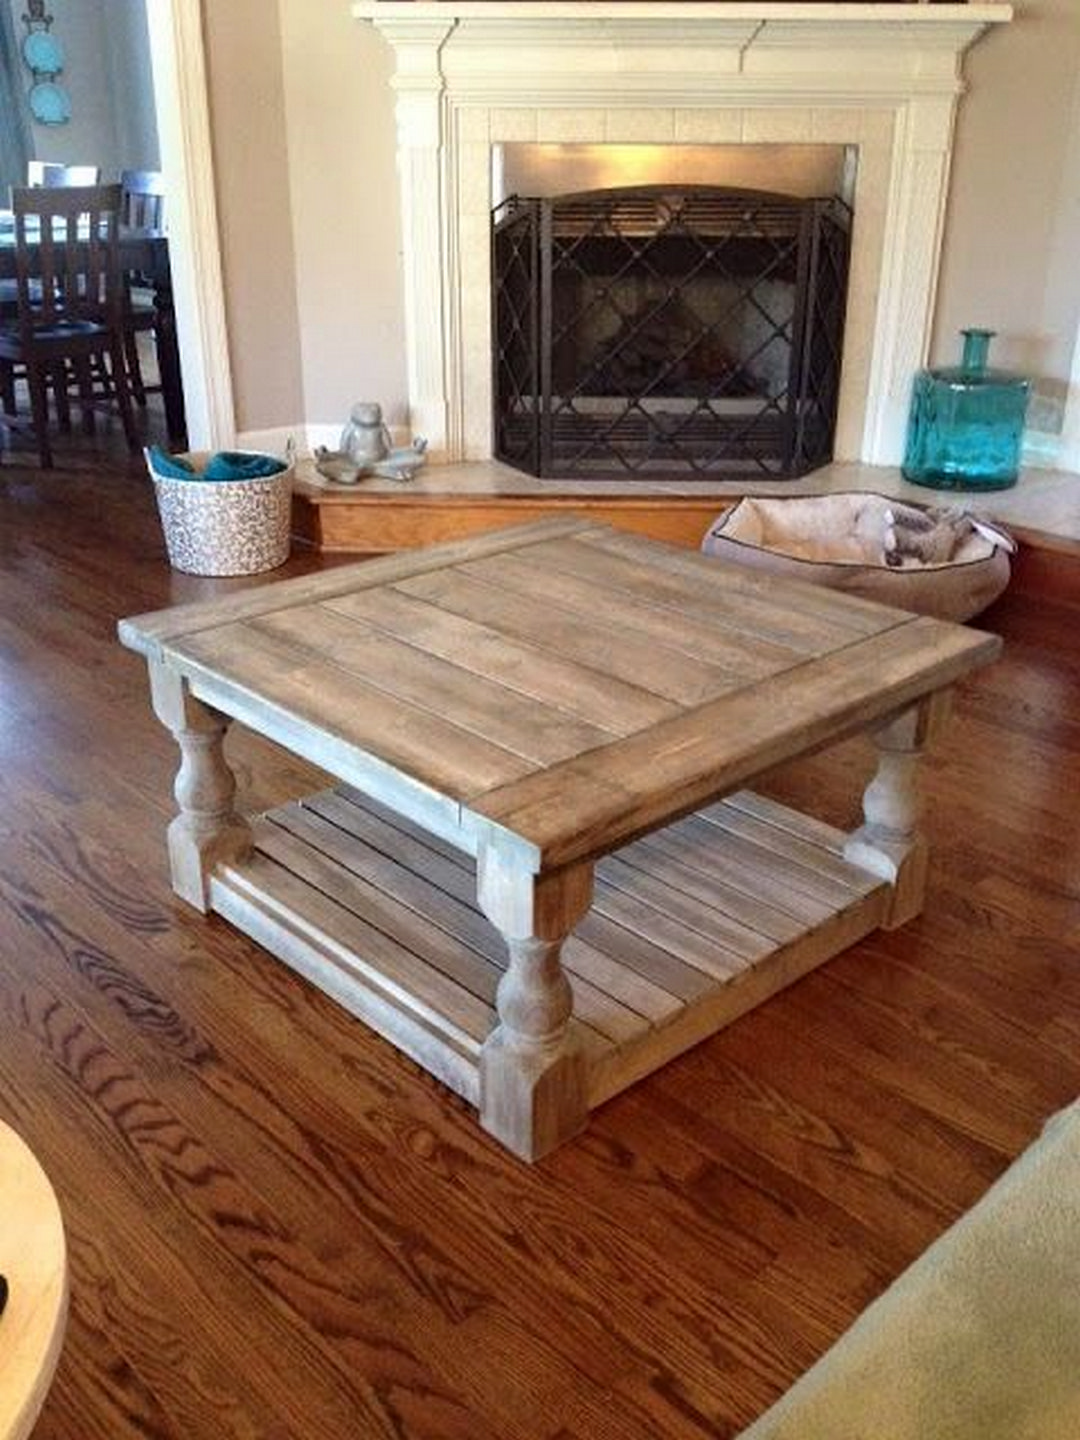 How To Decorate Your Coffee Table Design Like A Pro Easy Home Decor Coffee Table Made From Pallets Home Decor